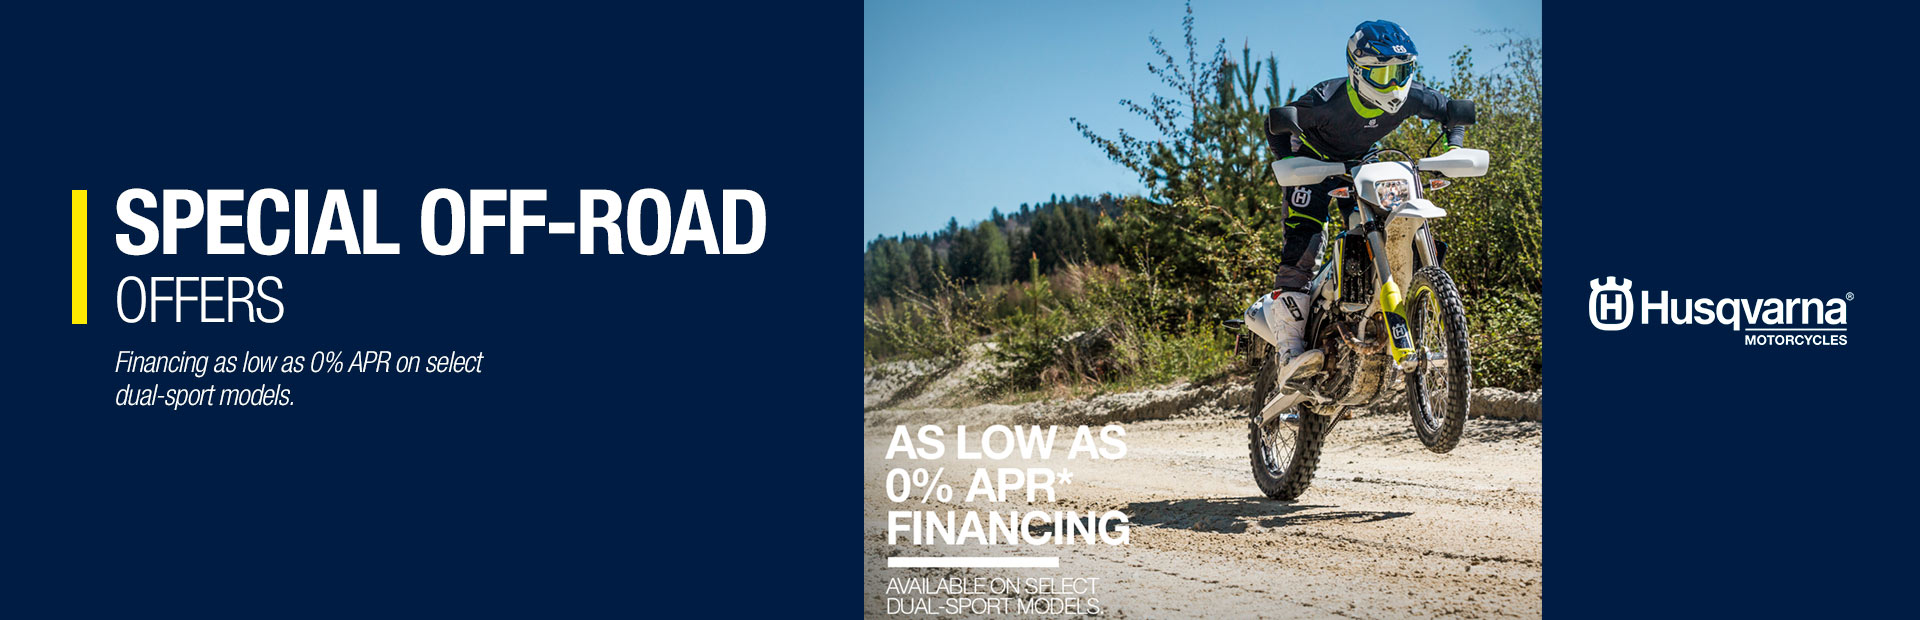 Husqvarna Motorcycles: SPECIAL OFF-ROAD OFFERS